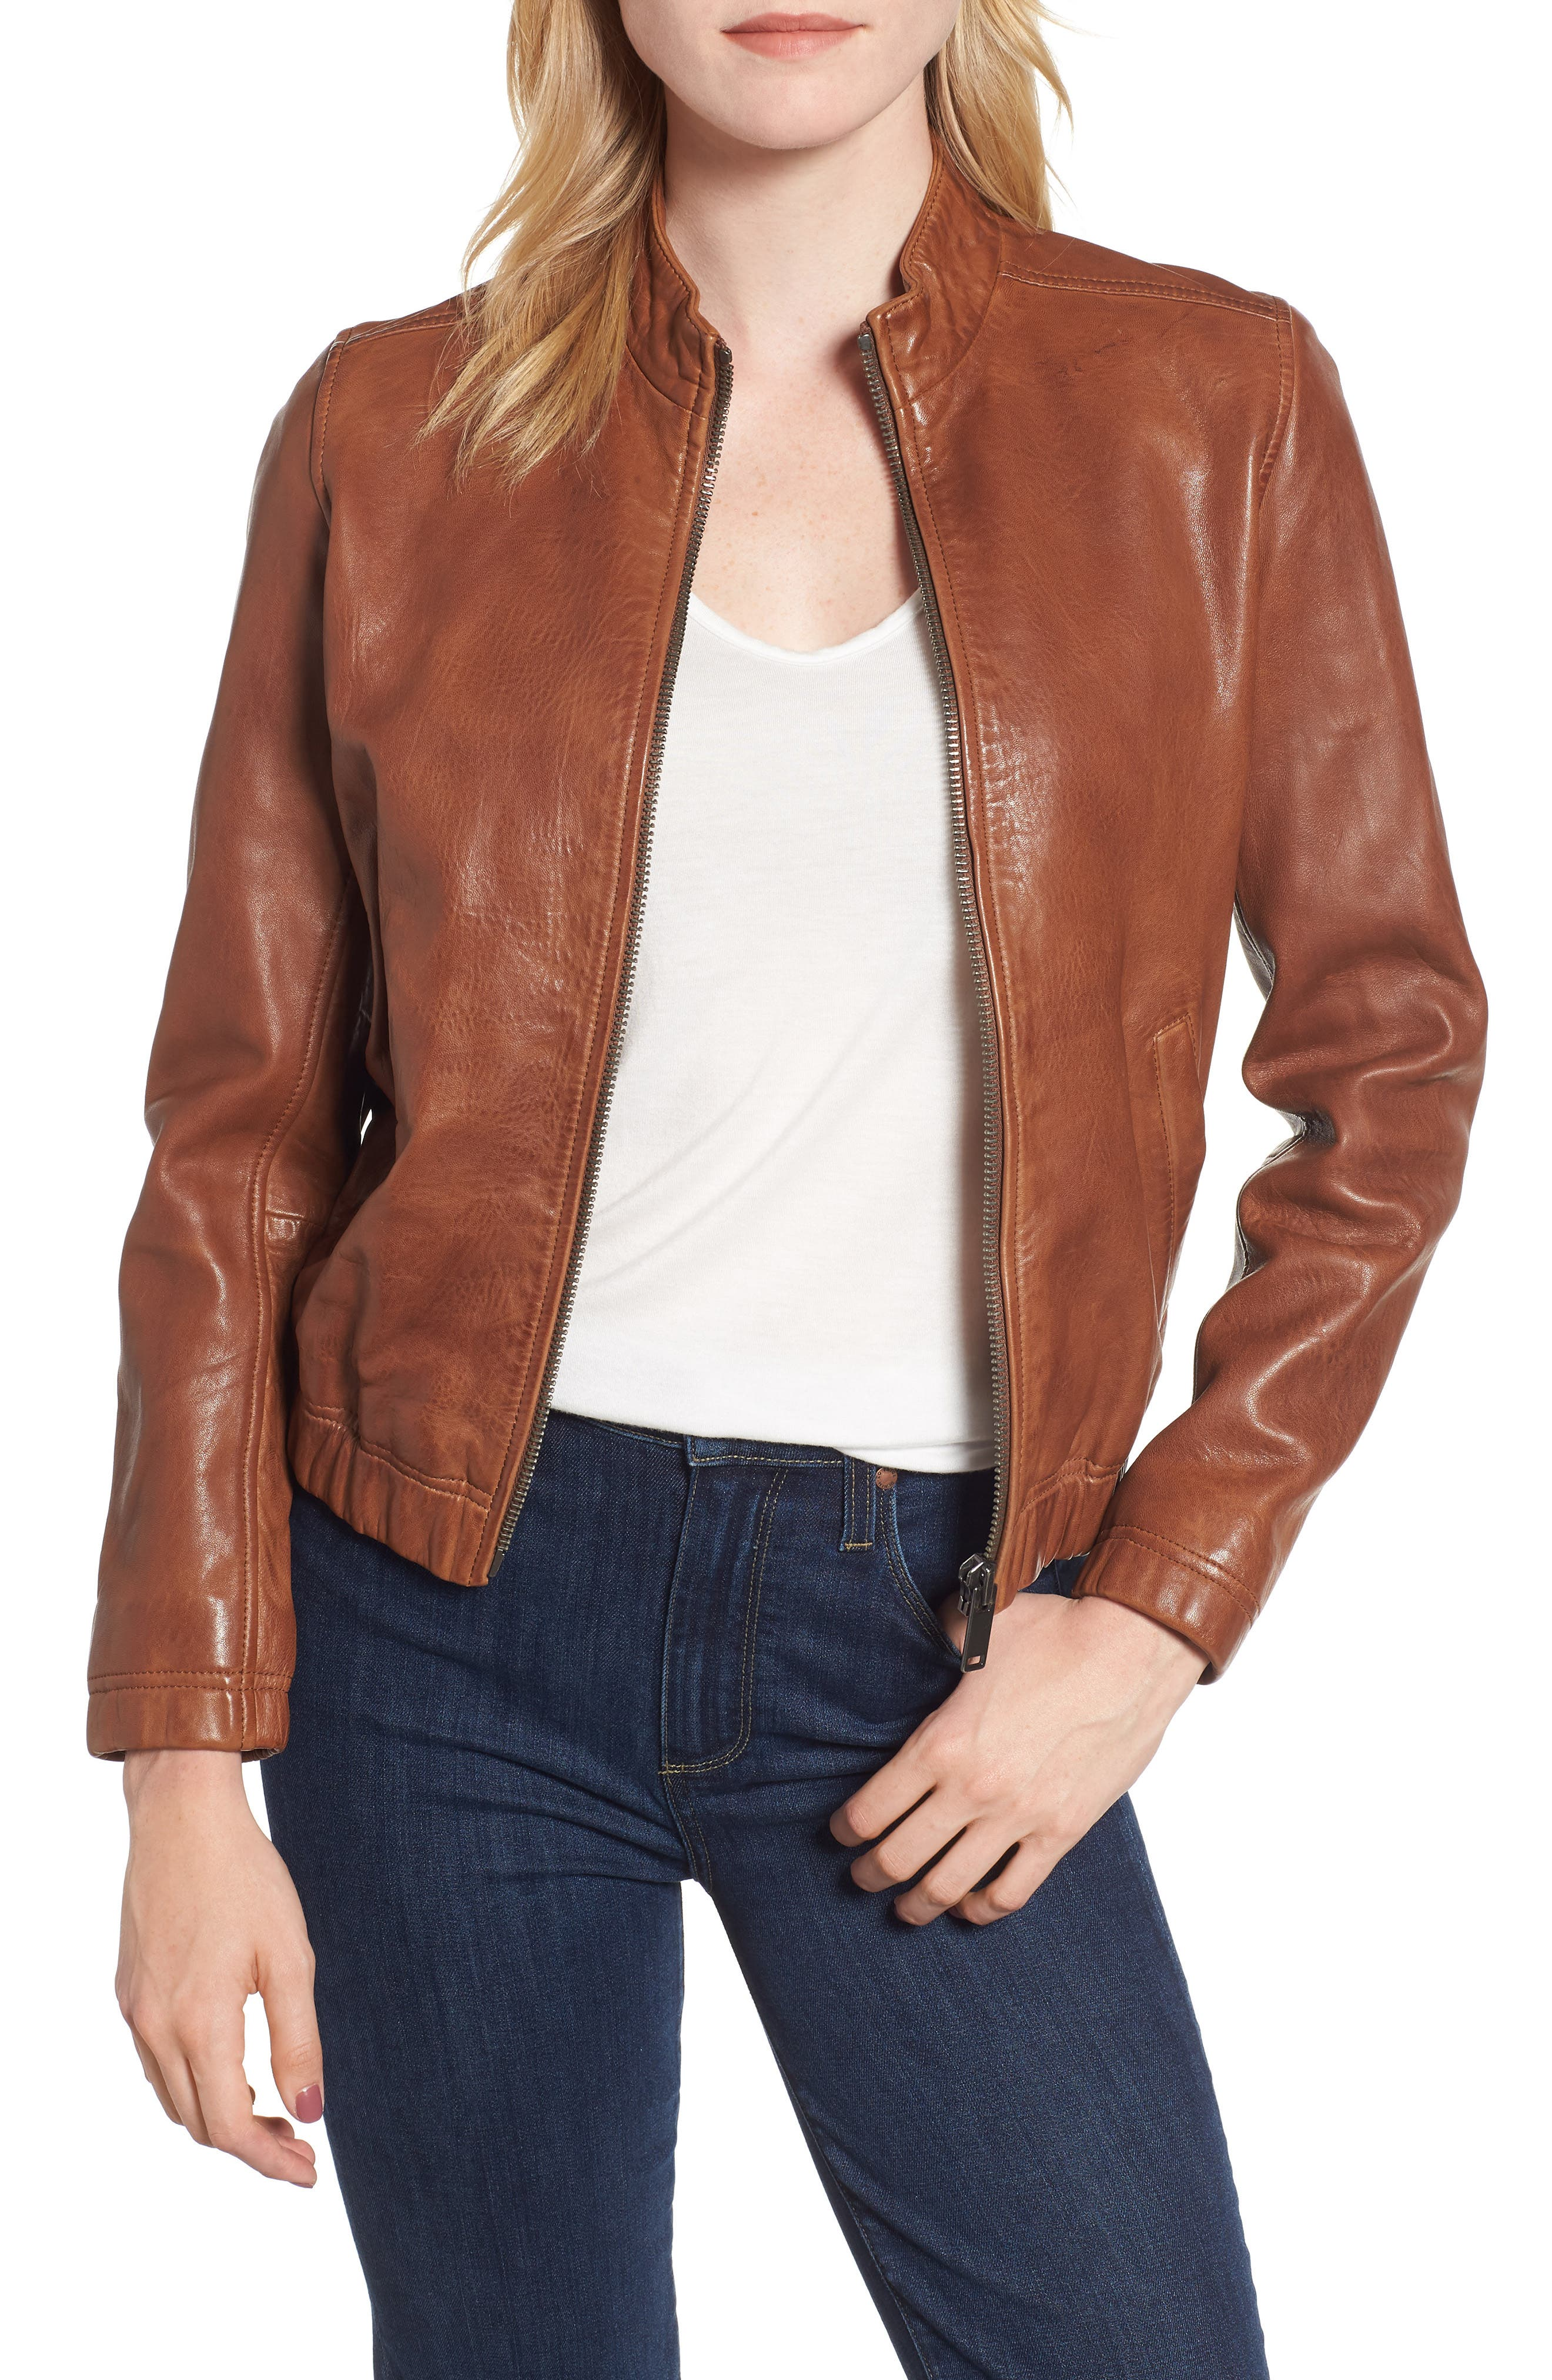 LUCKY BRAND,                             Ana Leather Jacket,                             Main thumbnail 1, color,                             210